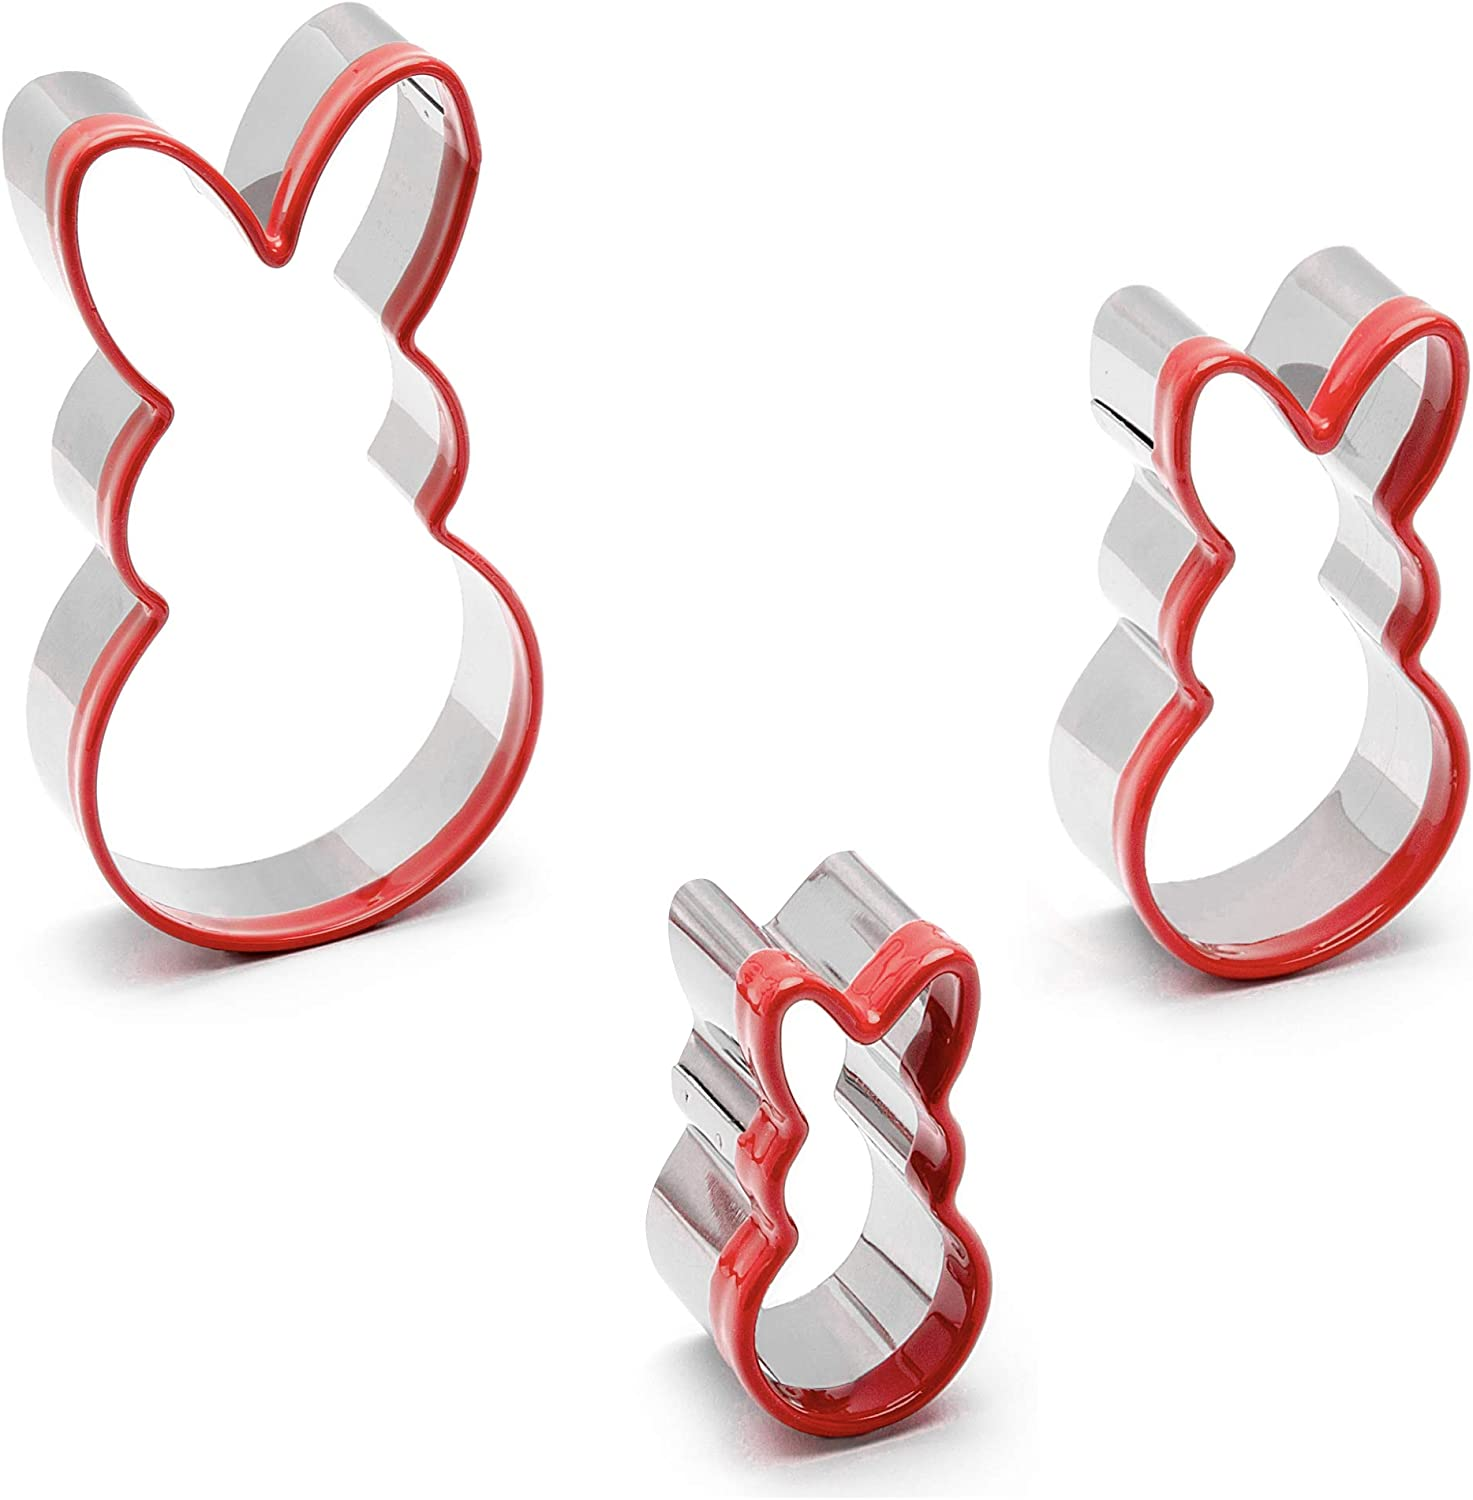 """3-Piece Easter Fun Cookie Cutters,Easter Bunny Cookie Cutter Set,5.1"""",3.2"""",2"""",Heavy Duty Food-Grade Stainless Steel,Unique Design with Protective Red Top PVC"""